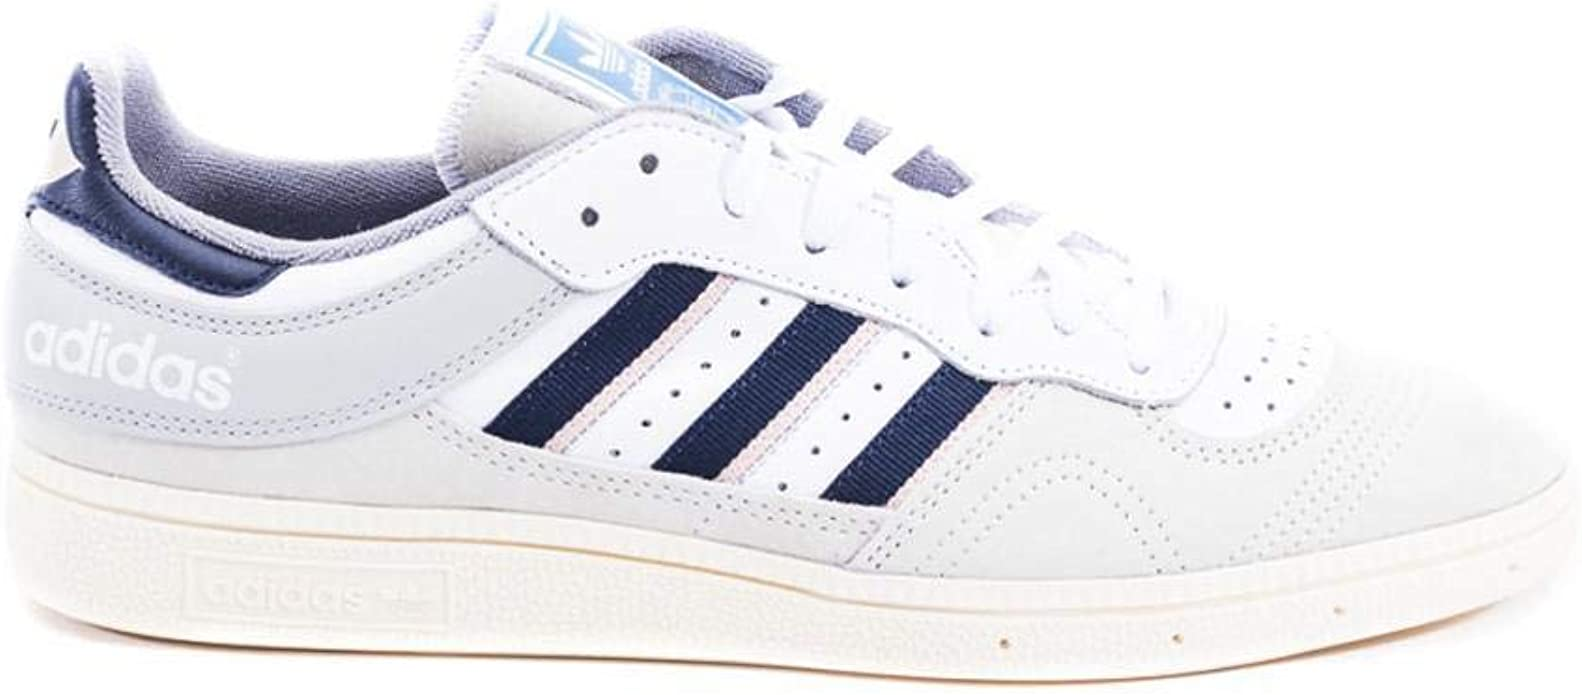 adidas Originals Handball Top, Raw White Collegiate Navy